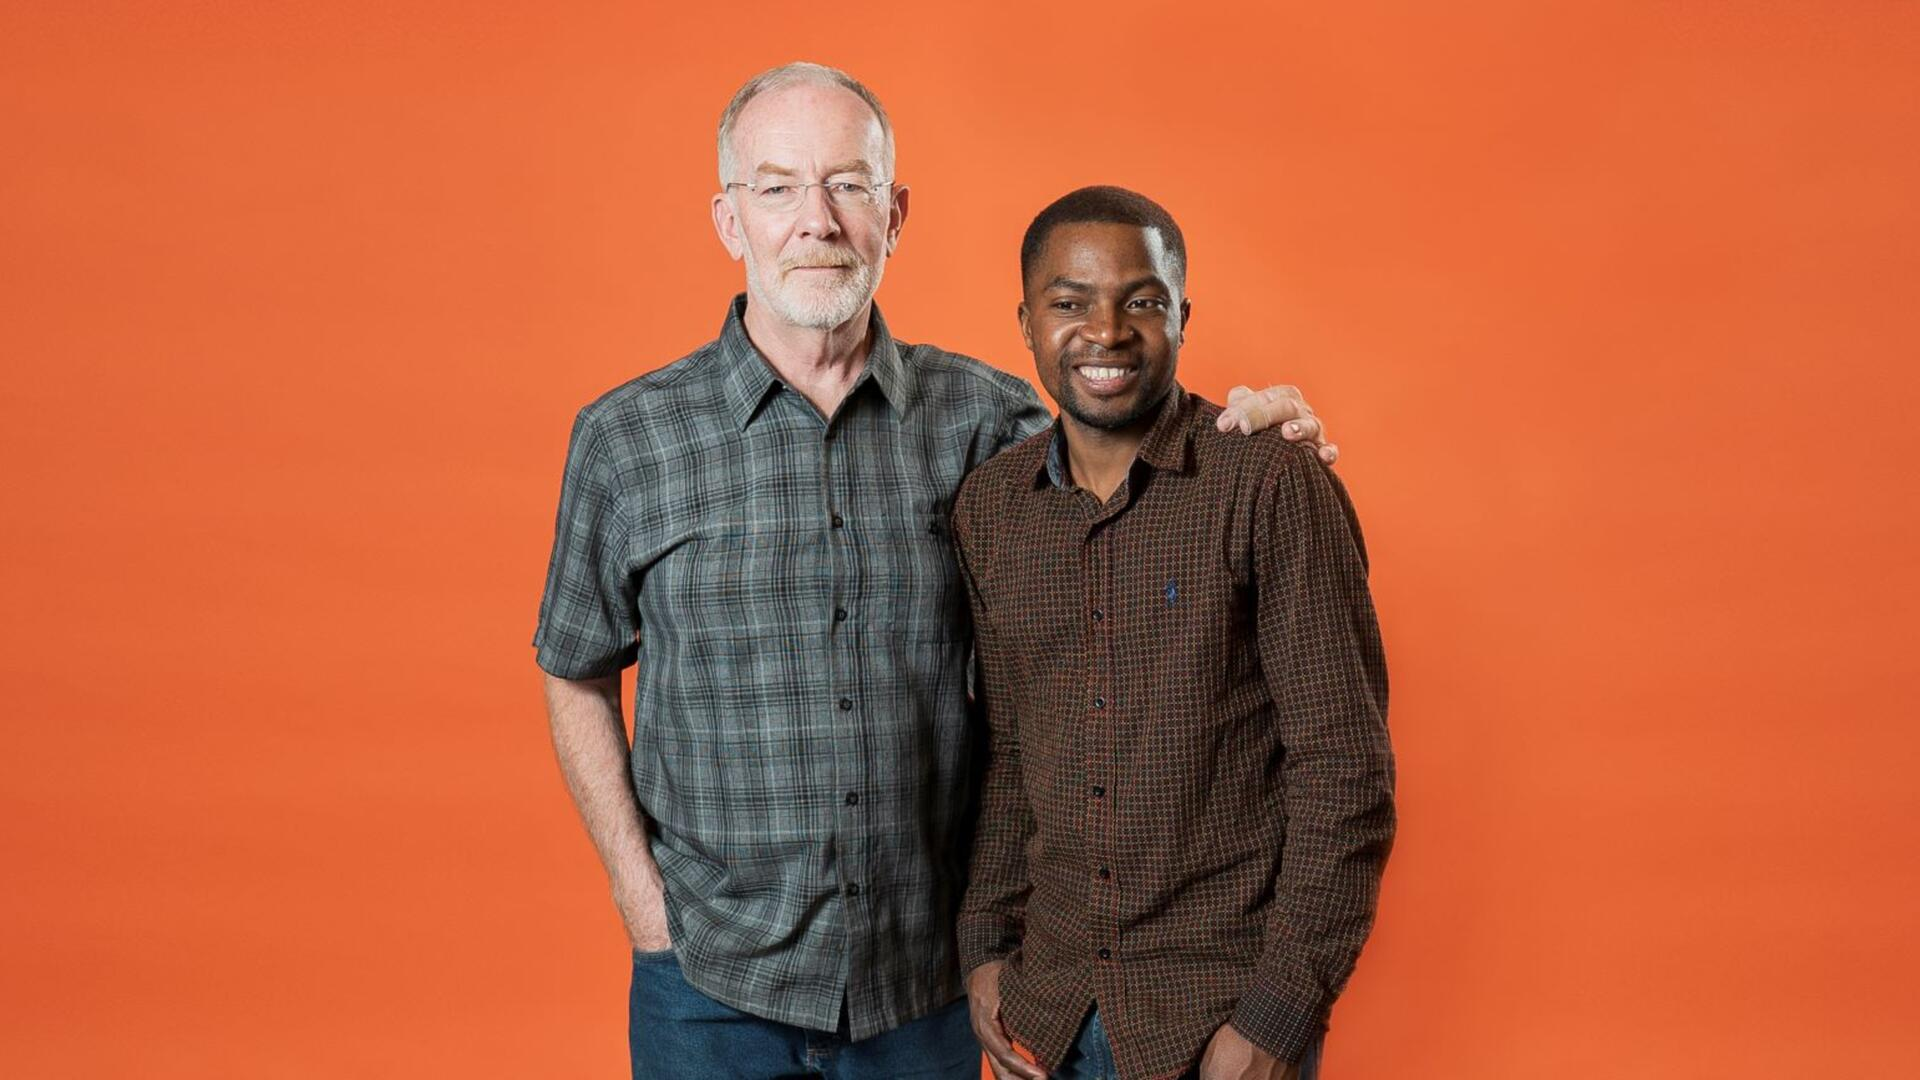 Robert Sebatware and Dave Kurz posing for the camera in front of an orange background.